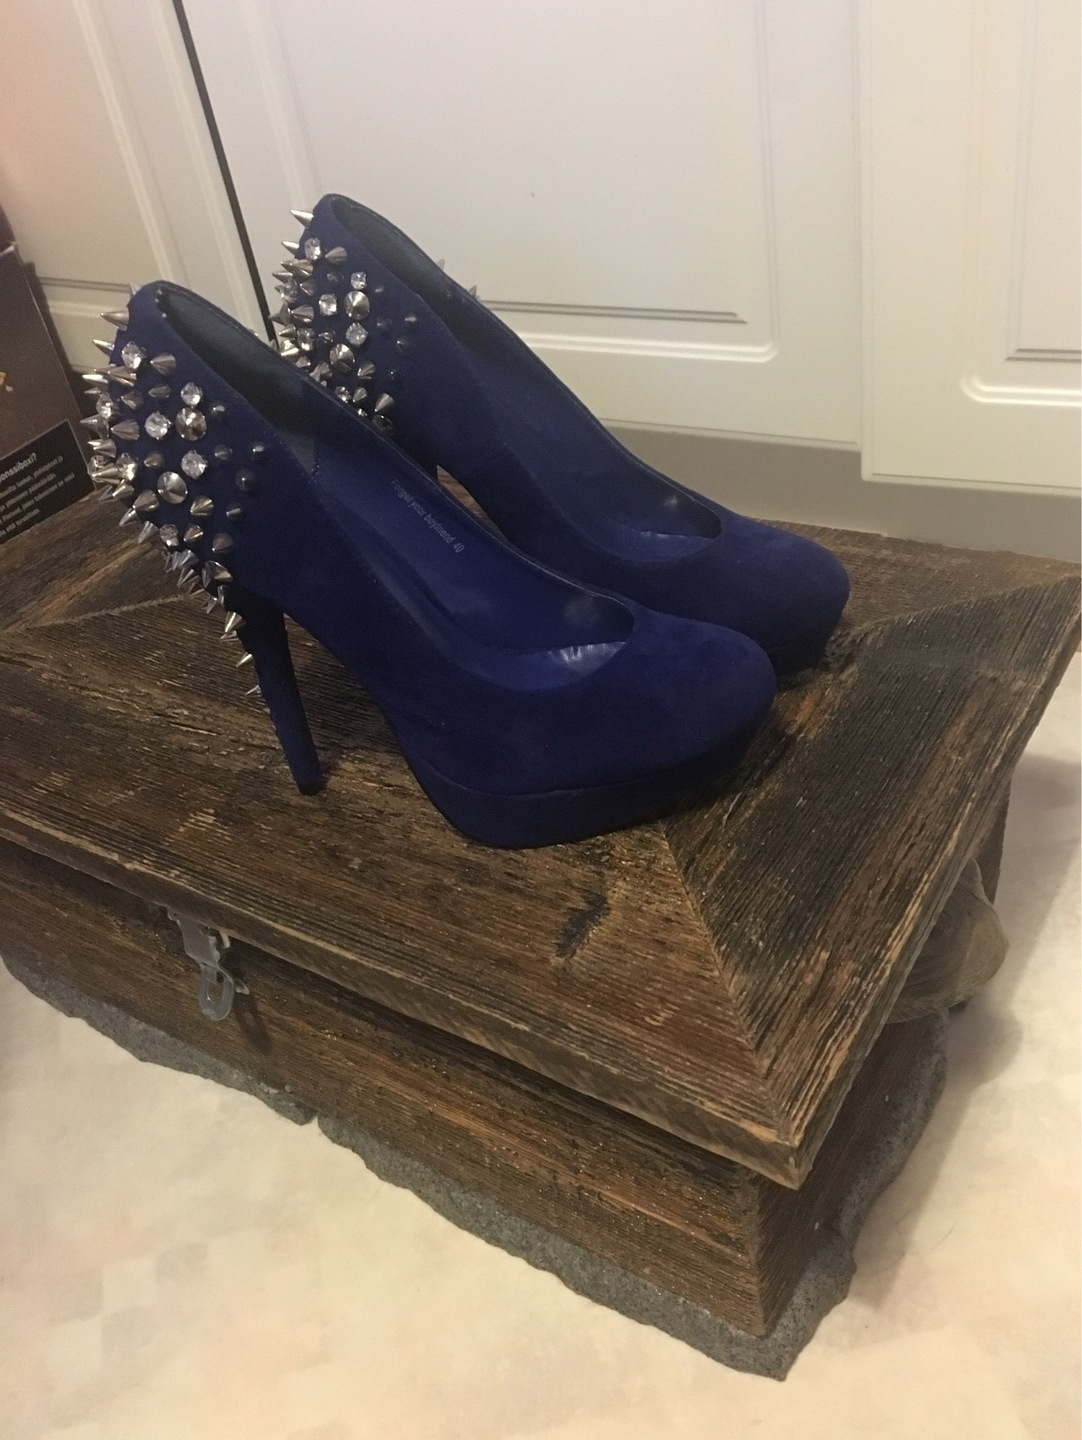 Women's heels & dress shoes - NLY photo 1